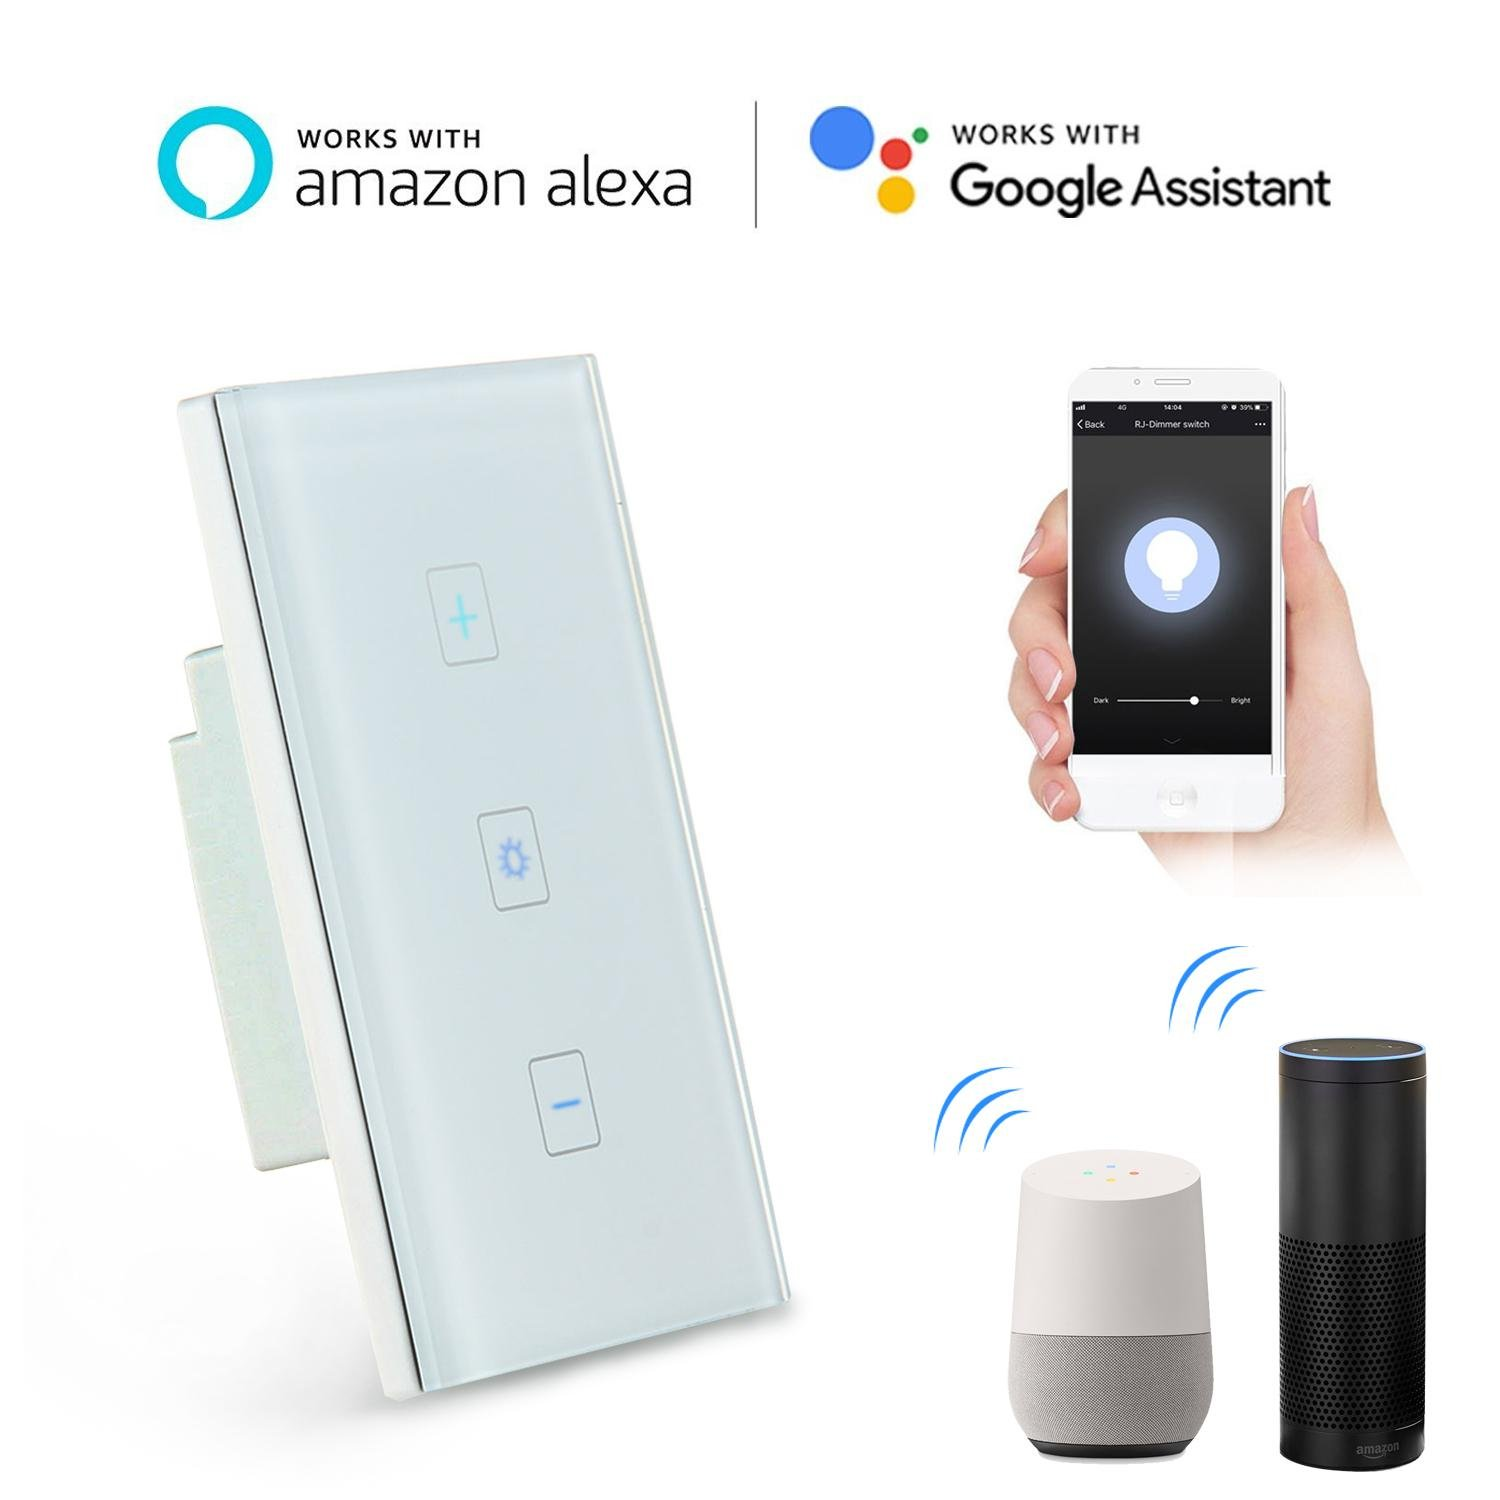 FOONEE Wifi Dimmer Switch, Home Decoration Smart Dimmer Switch with Alexa, Google Home Touch Switch Outlet Wifi Smart Lighting Control for Bedroom, Kitchen, Living Room(Neutral Wiring Required)